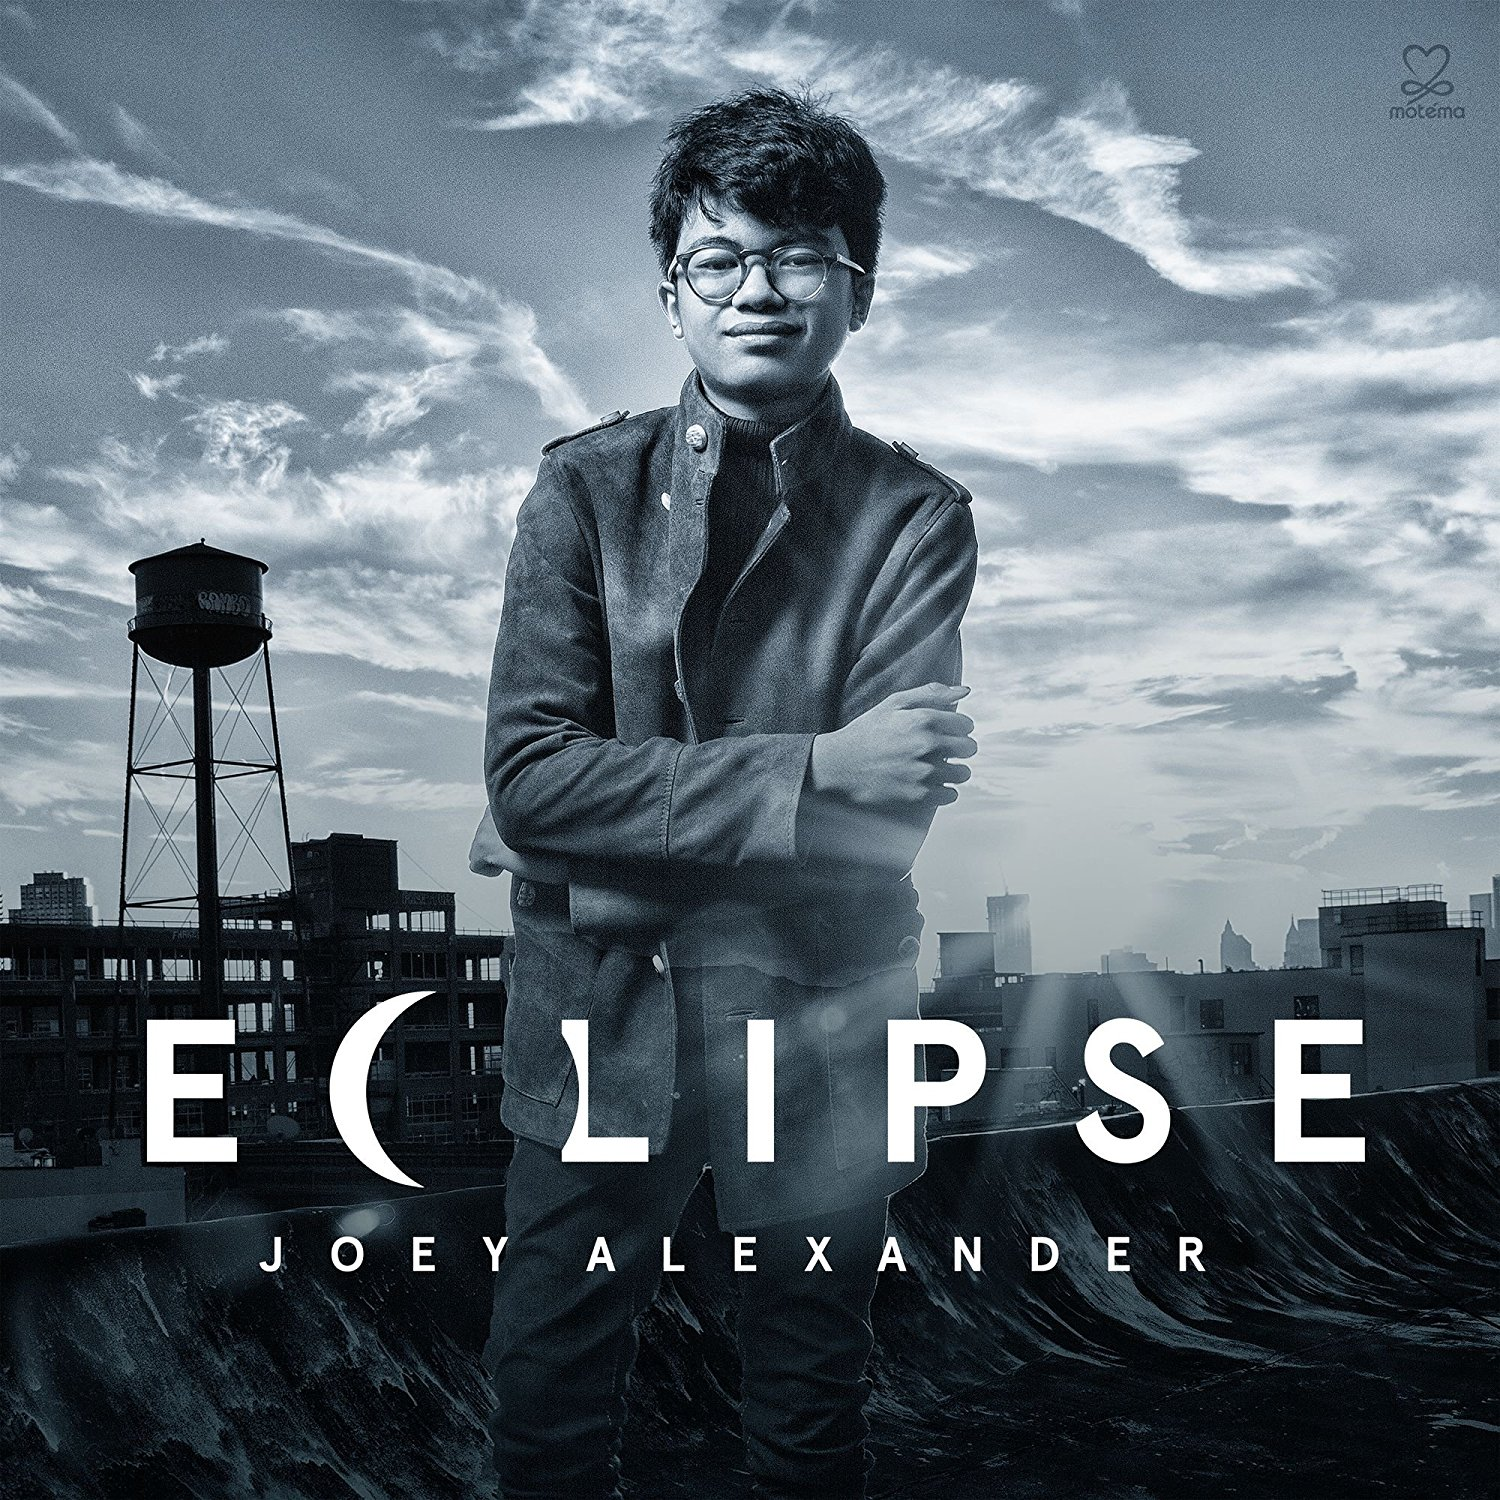 JOEY ALEXANDER, ECLIPSE